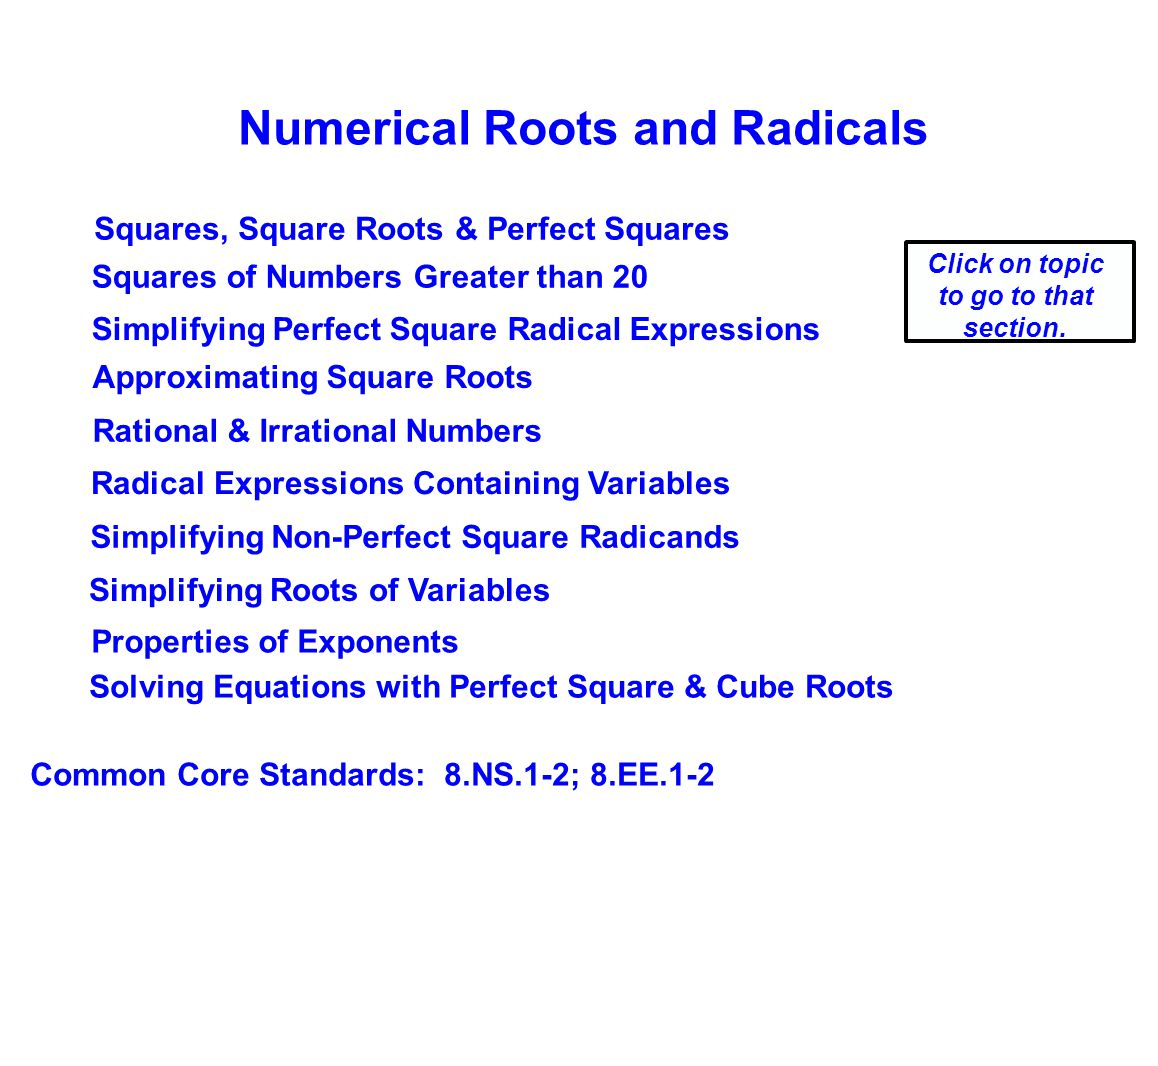 Numerical Roots & Radicals - ppt download